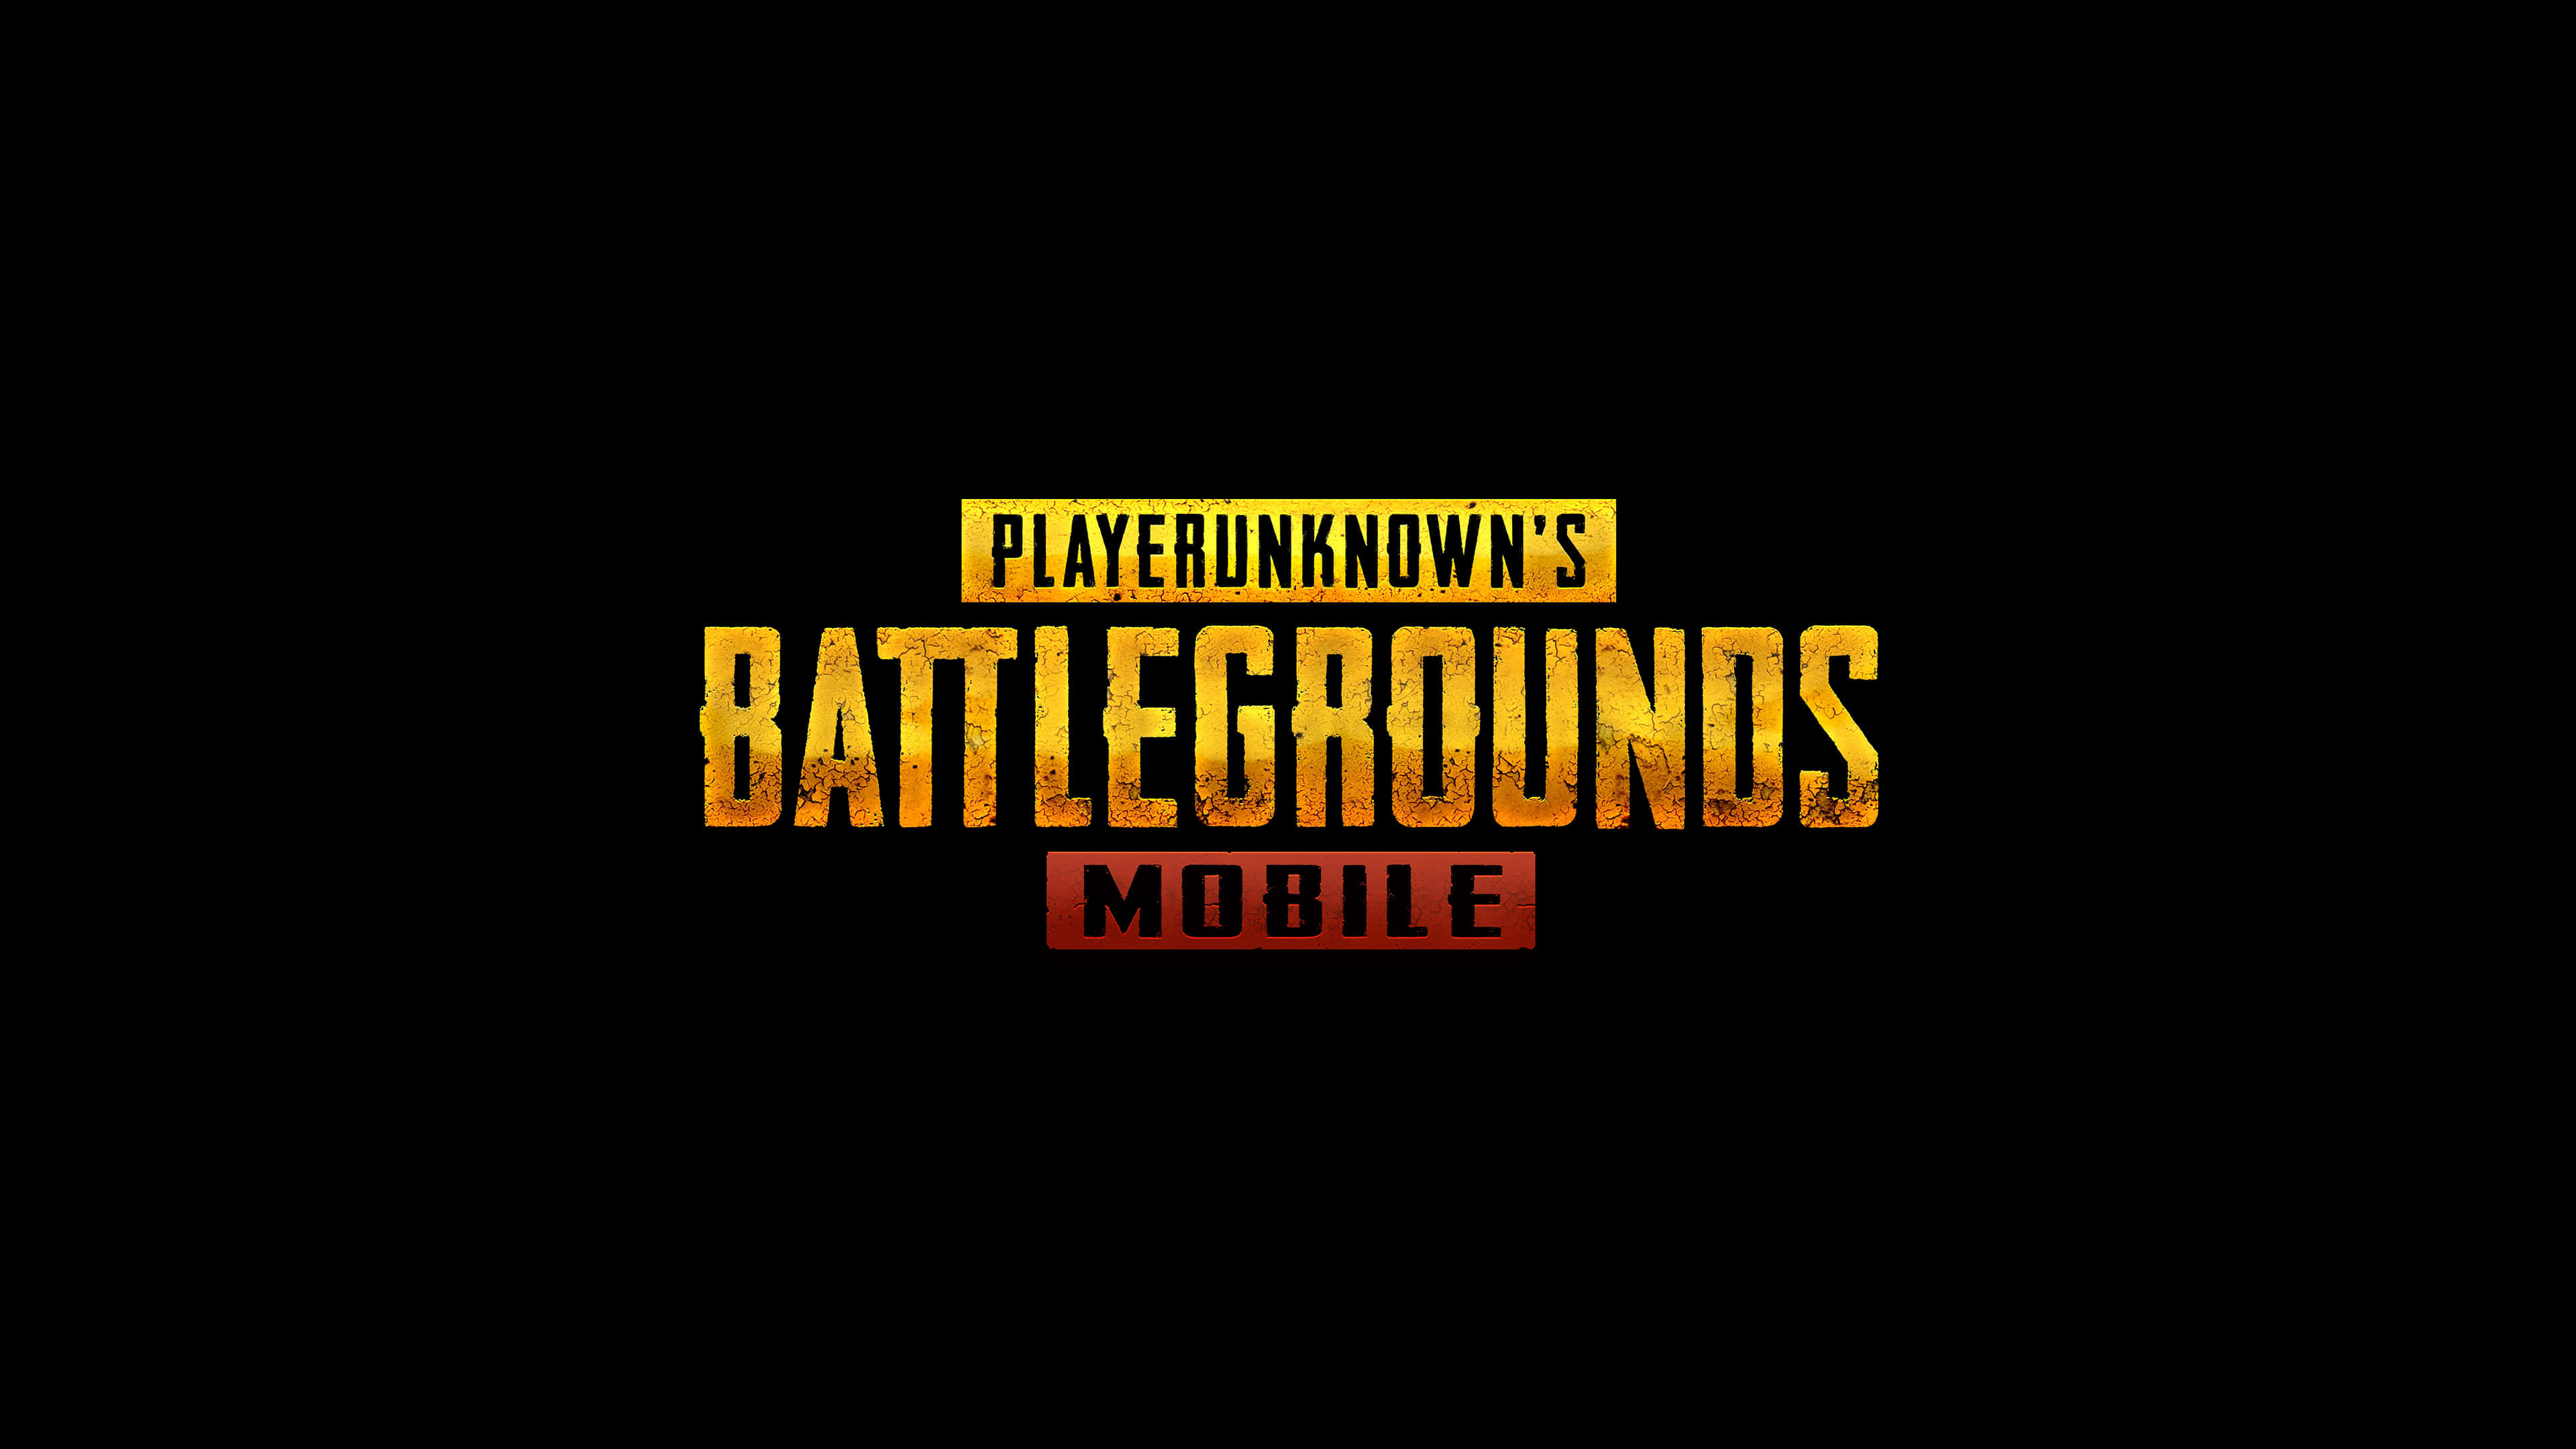 PUBG Mobile Player Unknown Battlegrounds Mobile Logo UHD 4K 3840x2160